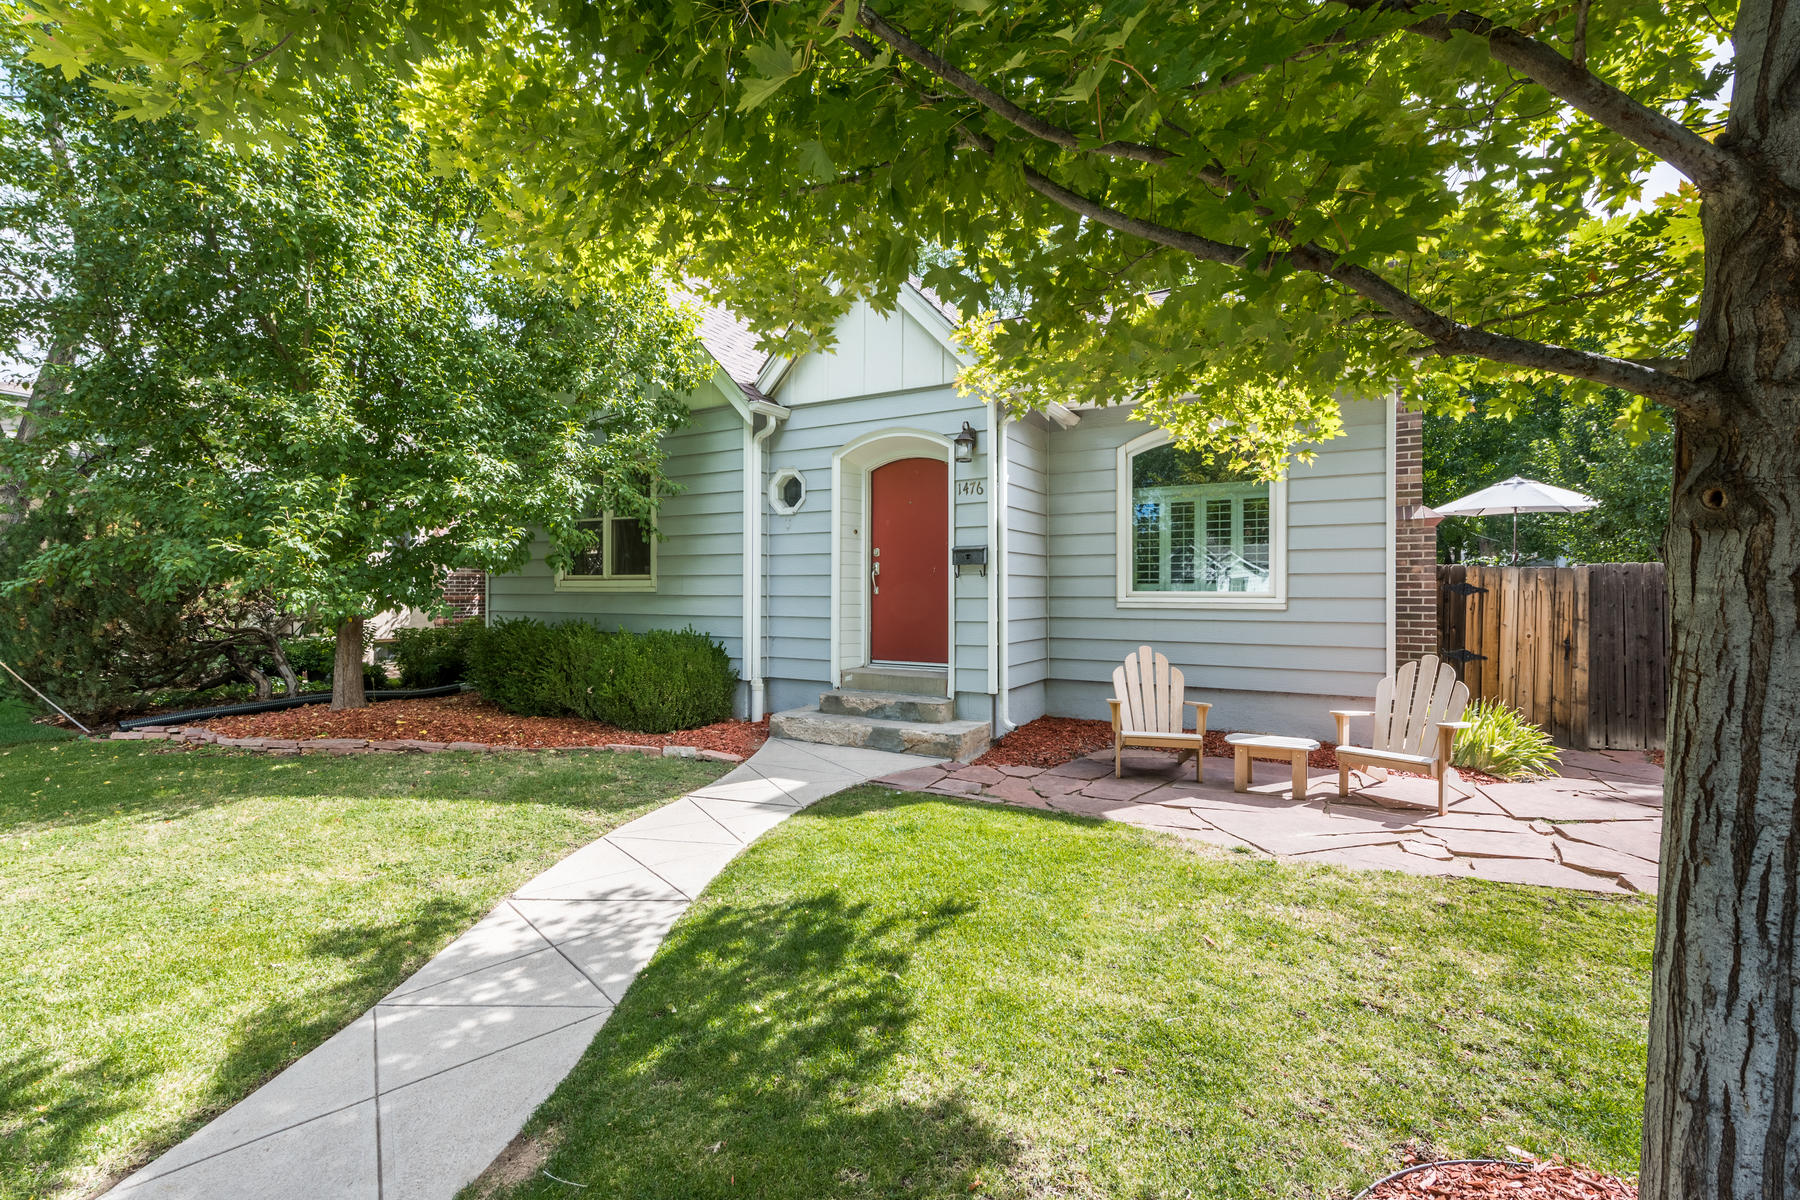 Property for Active at Charming New England-Style Home 1476 S Elizabeth St Denver, Colorado 80210 United States